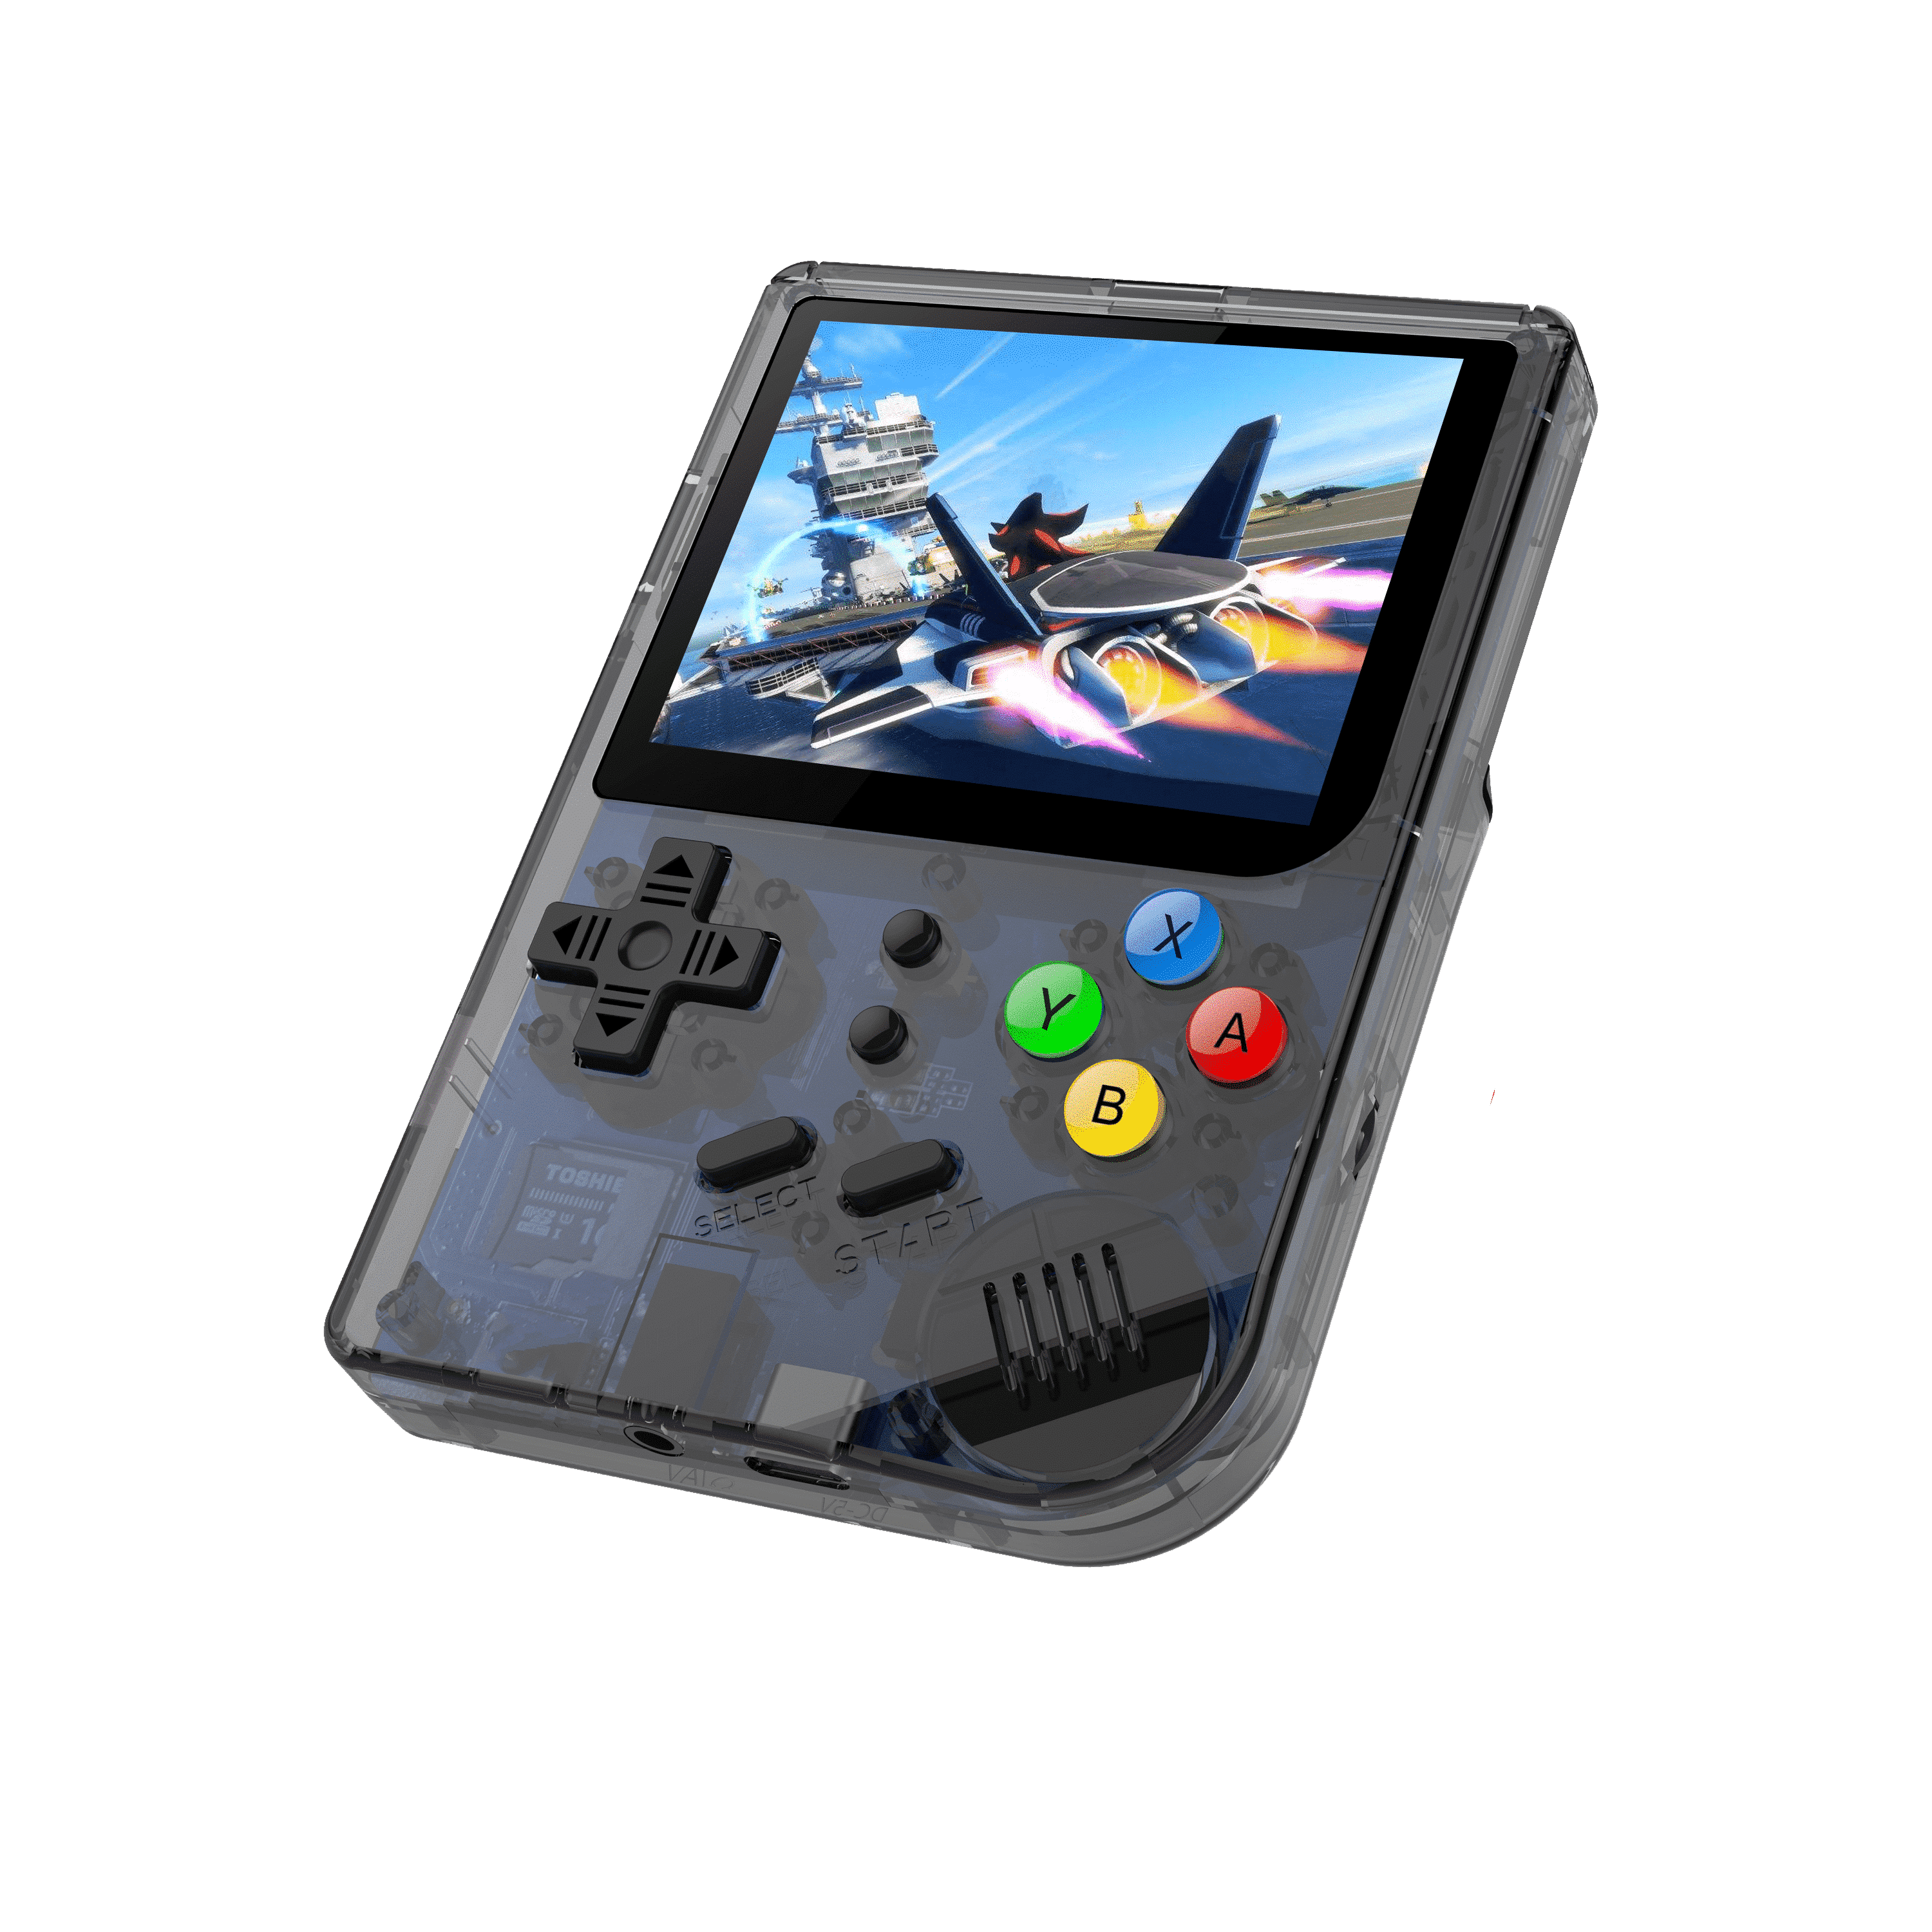 RG300 OpenDingux Retro Gaming Portable Handheld - Transparent playing a Retro Game